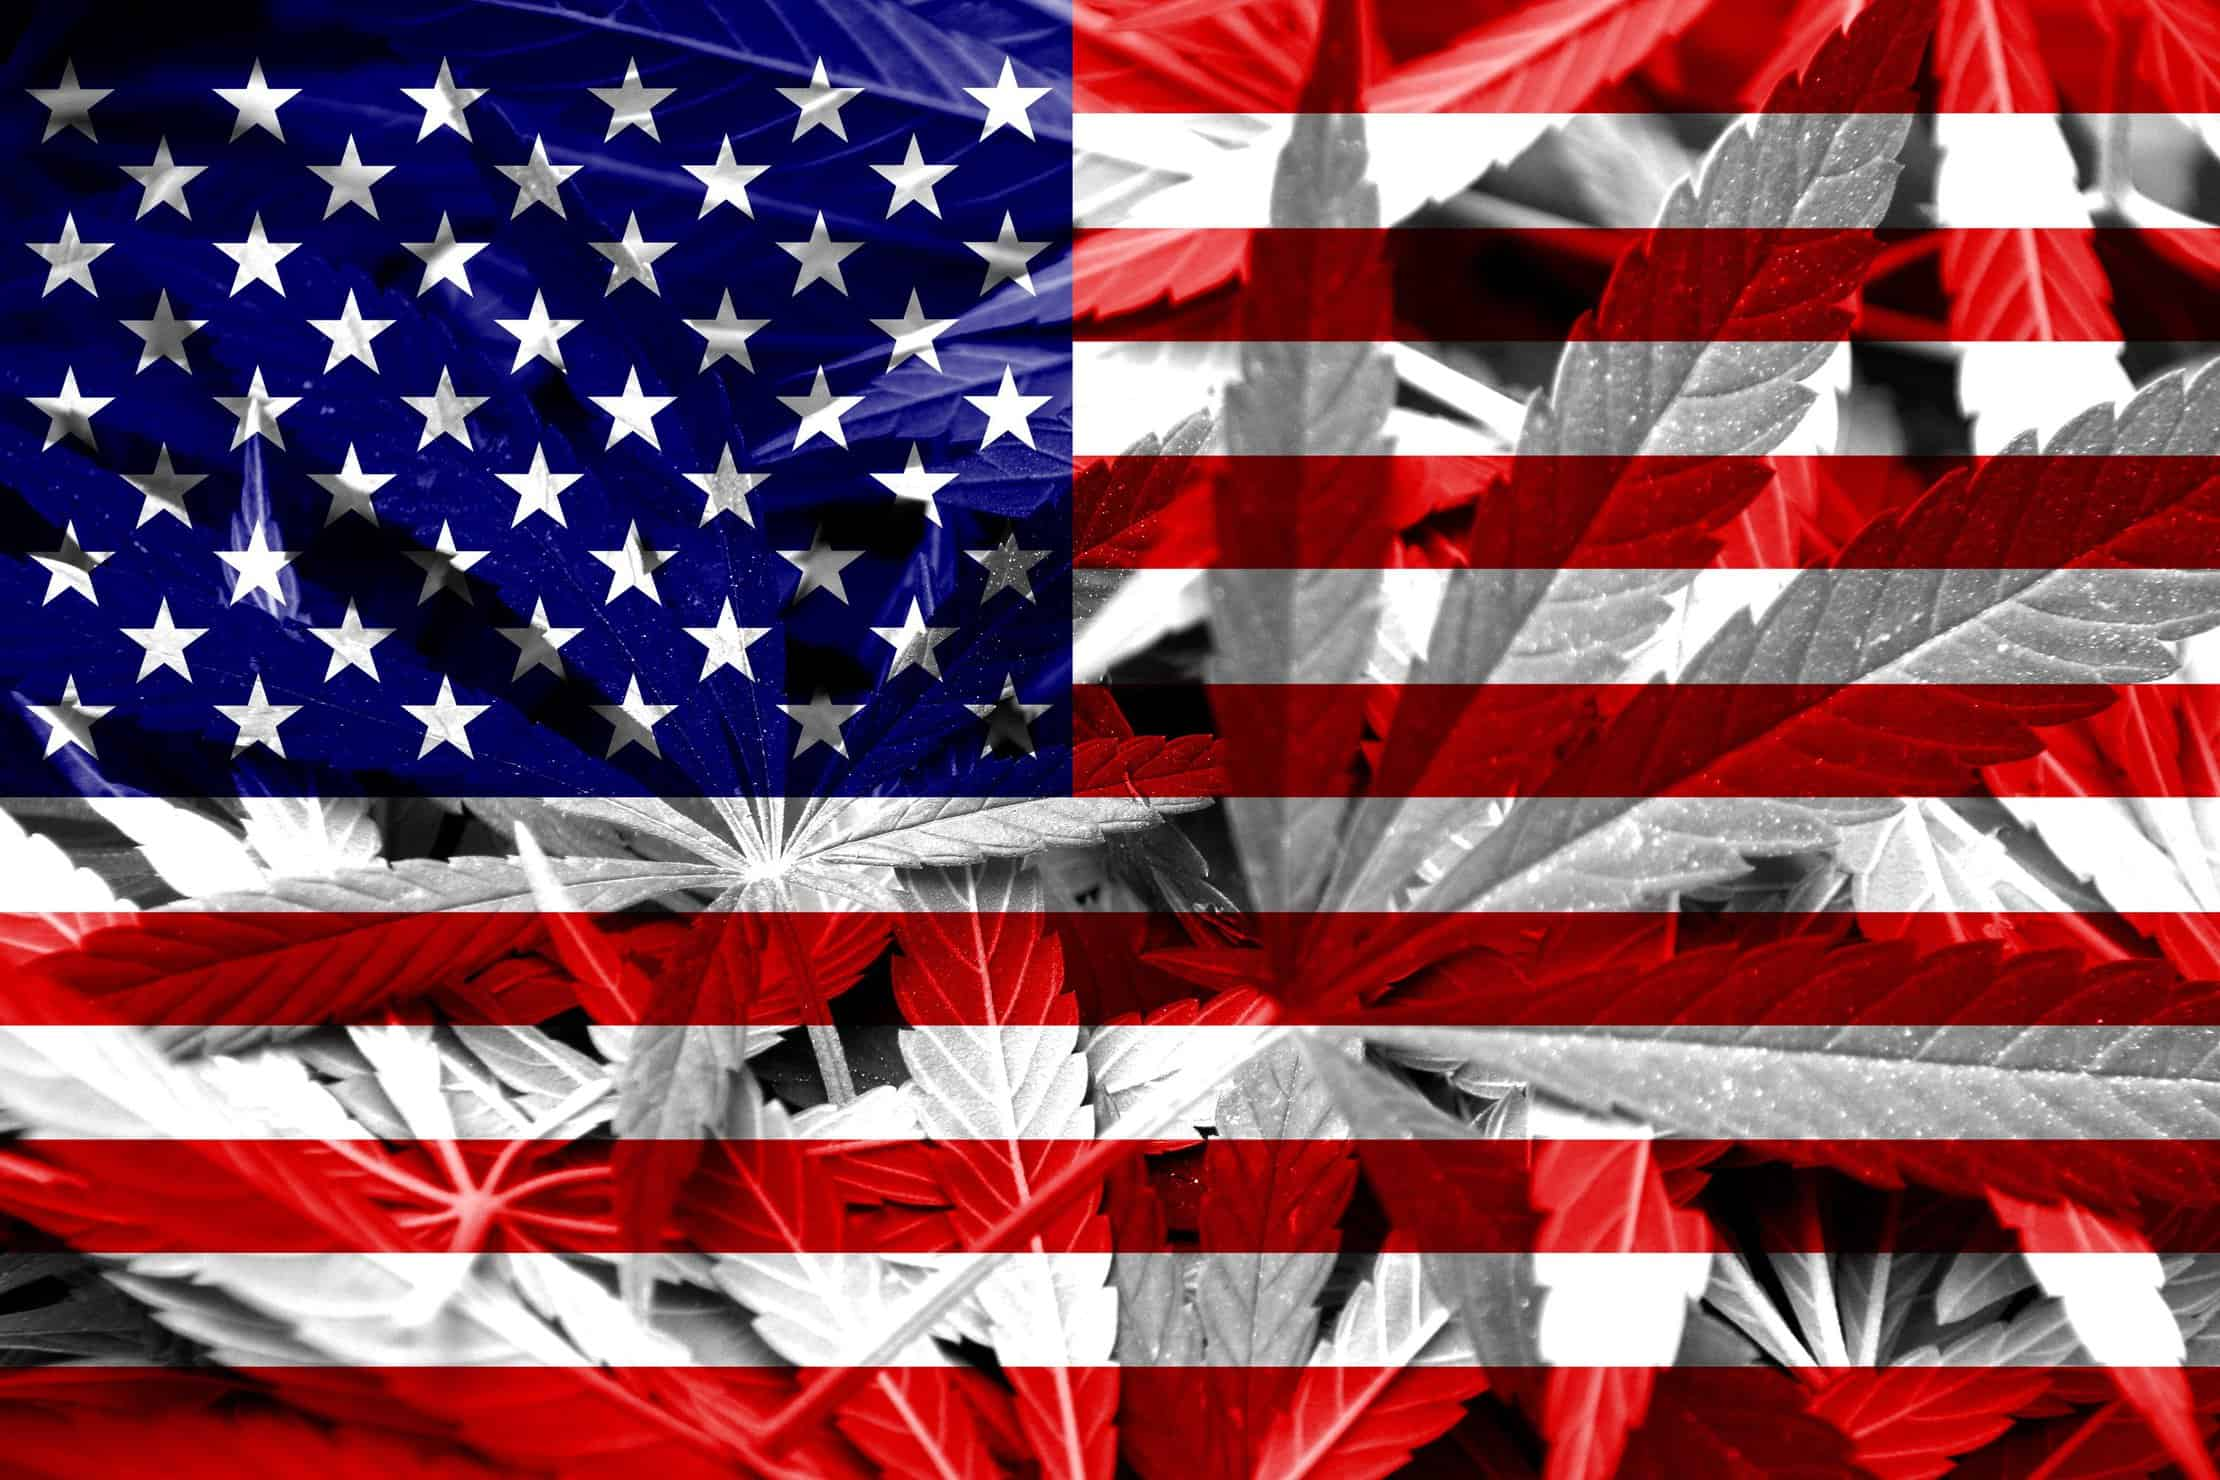 An Argument For Full Marijunana Legalization By 2021 In The USA. US flag with marijuana leaves.